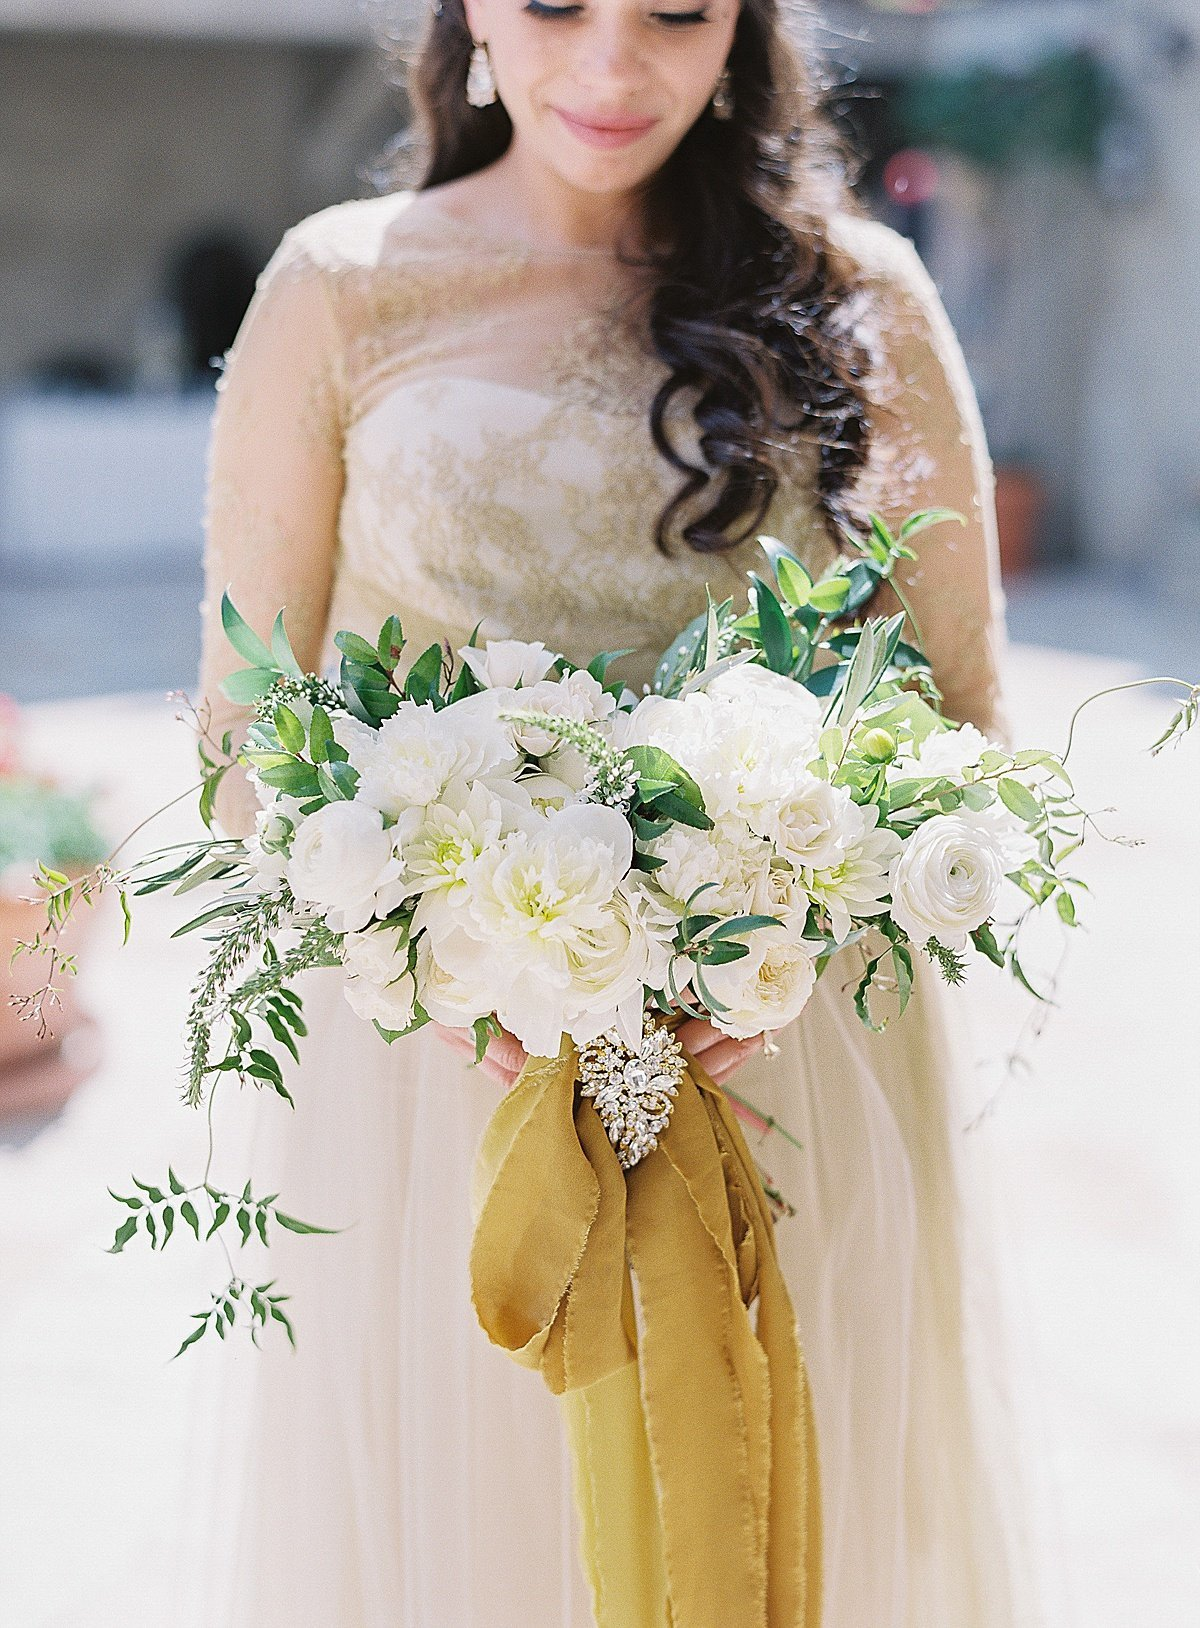 Posh Peony Mission Inn Lush Gray and Gold Greenery Wedding Flowers_0017